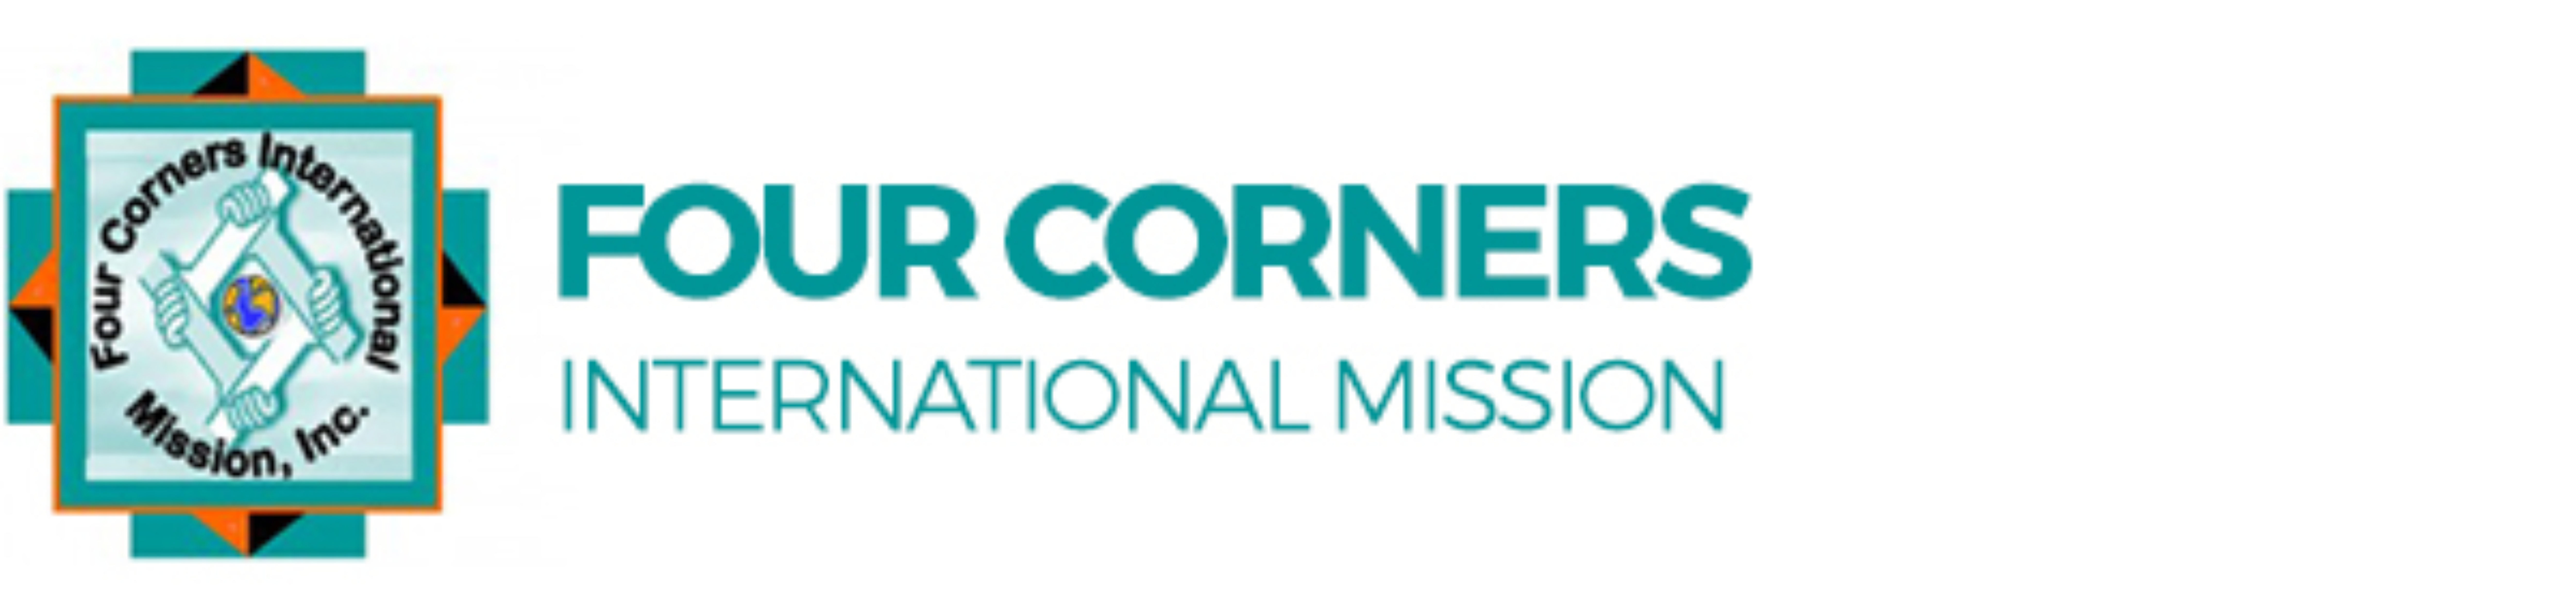 Four Corners International Mission